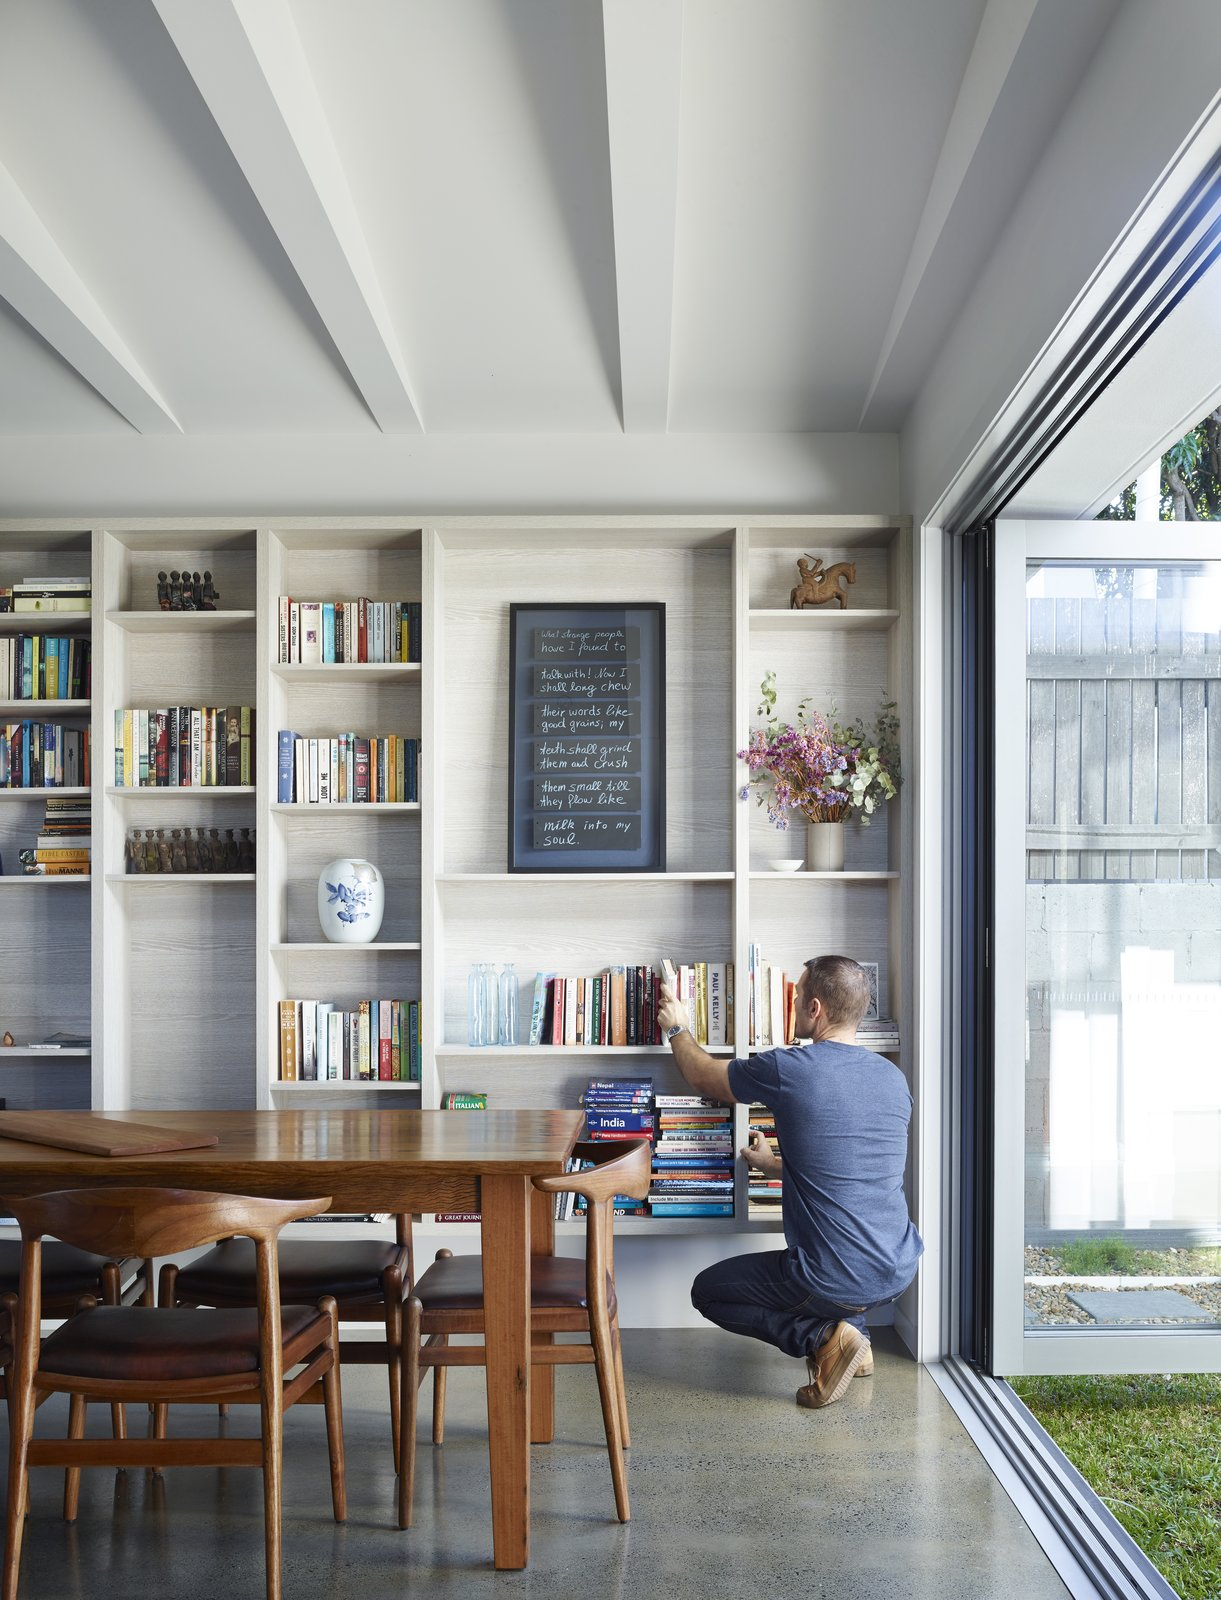 """Working with the narrow qualities of the site, the internal spaces of the kitchen and main living areas can open completely to double them in size,"" O'Neill said. The architecture firm built a custom bookshelf using drifted oak with the warm Ravine finish by Polytec.  Annie Street by Kelly Dawson"